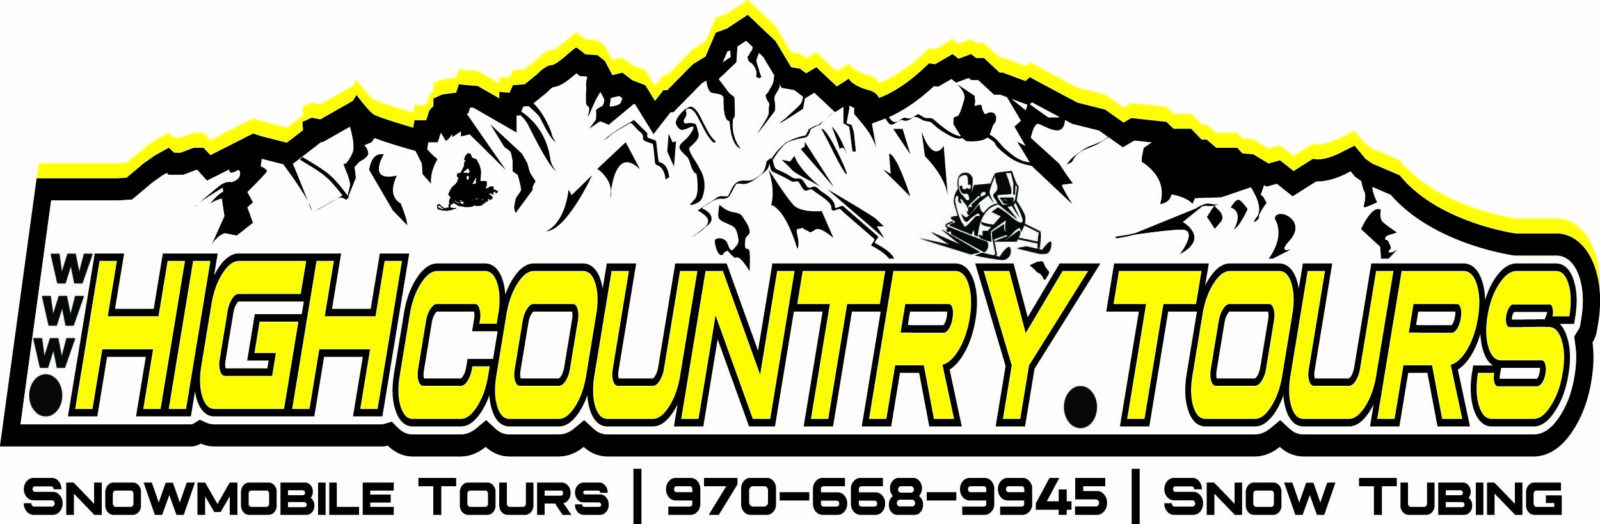 high country tours logo